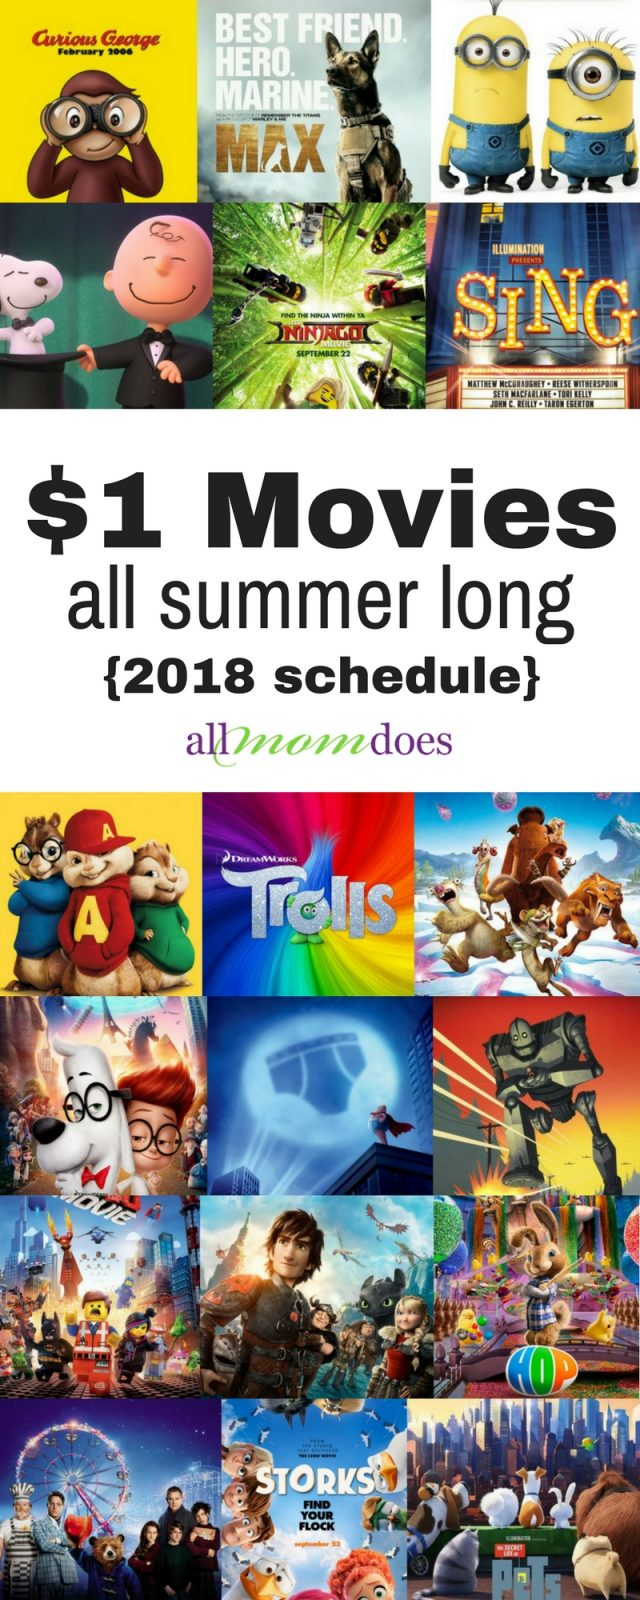 2018 Movie Schedule for the Regal Summer Movie Express - $1 movies all summer long! Cheap activity for kids! #movies #summerfun